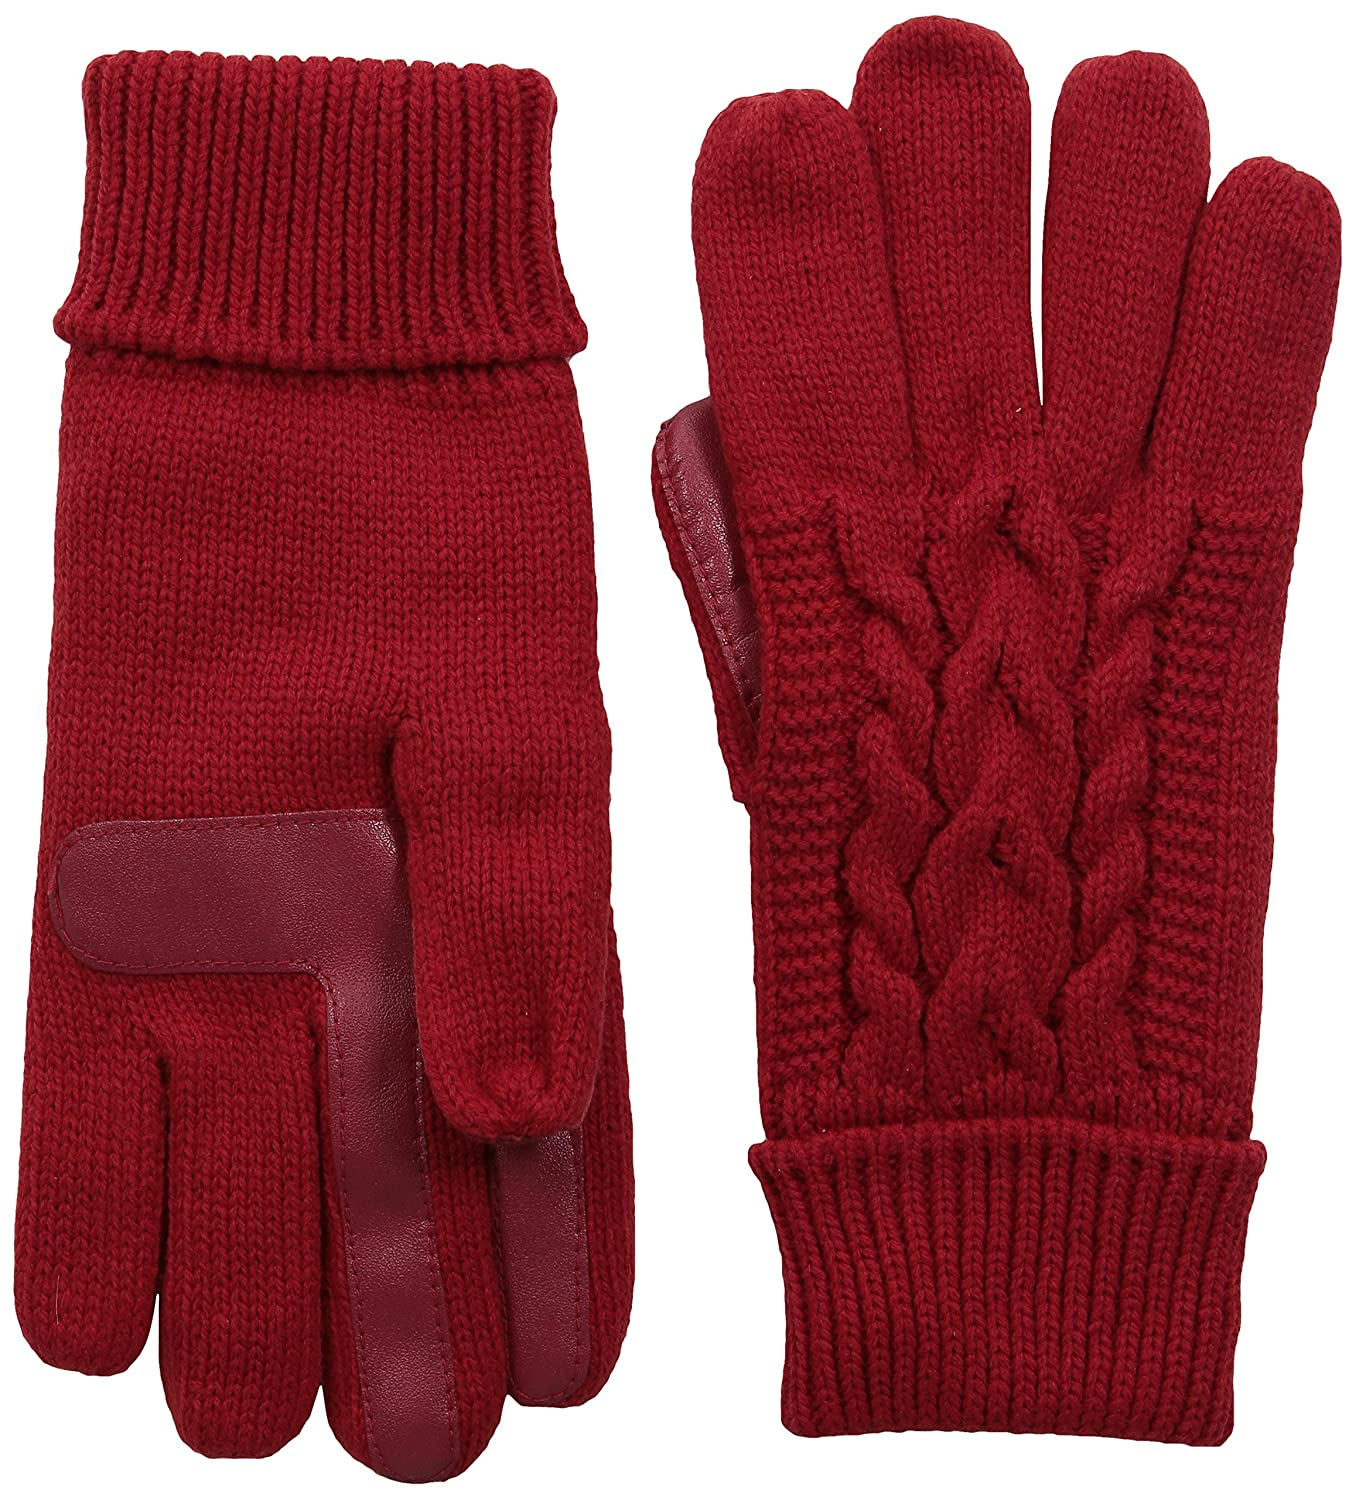 Isotoner Women's Solid Triple Cable Knit smarTouch Gloves Navy One Size Totes Women' s Accessories 40029